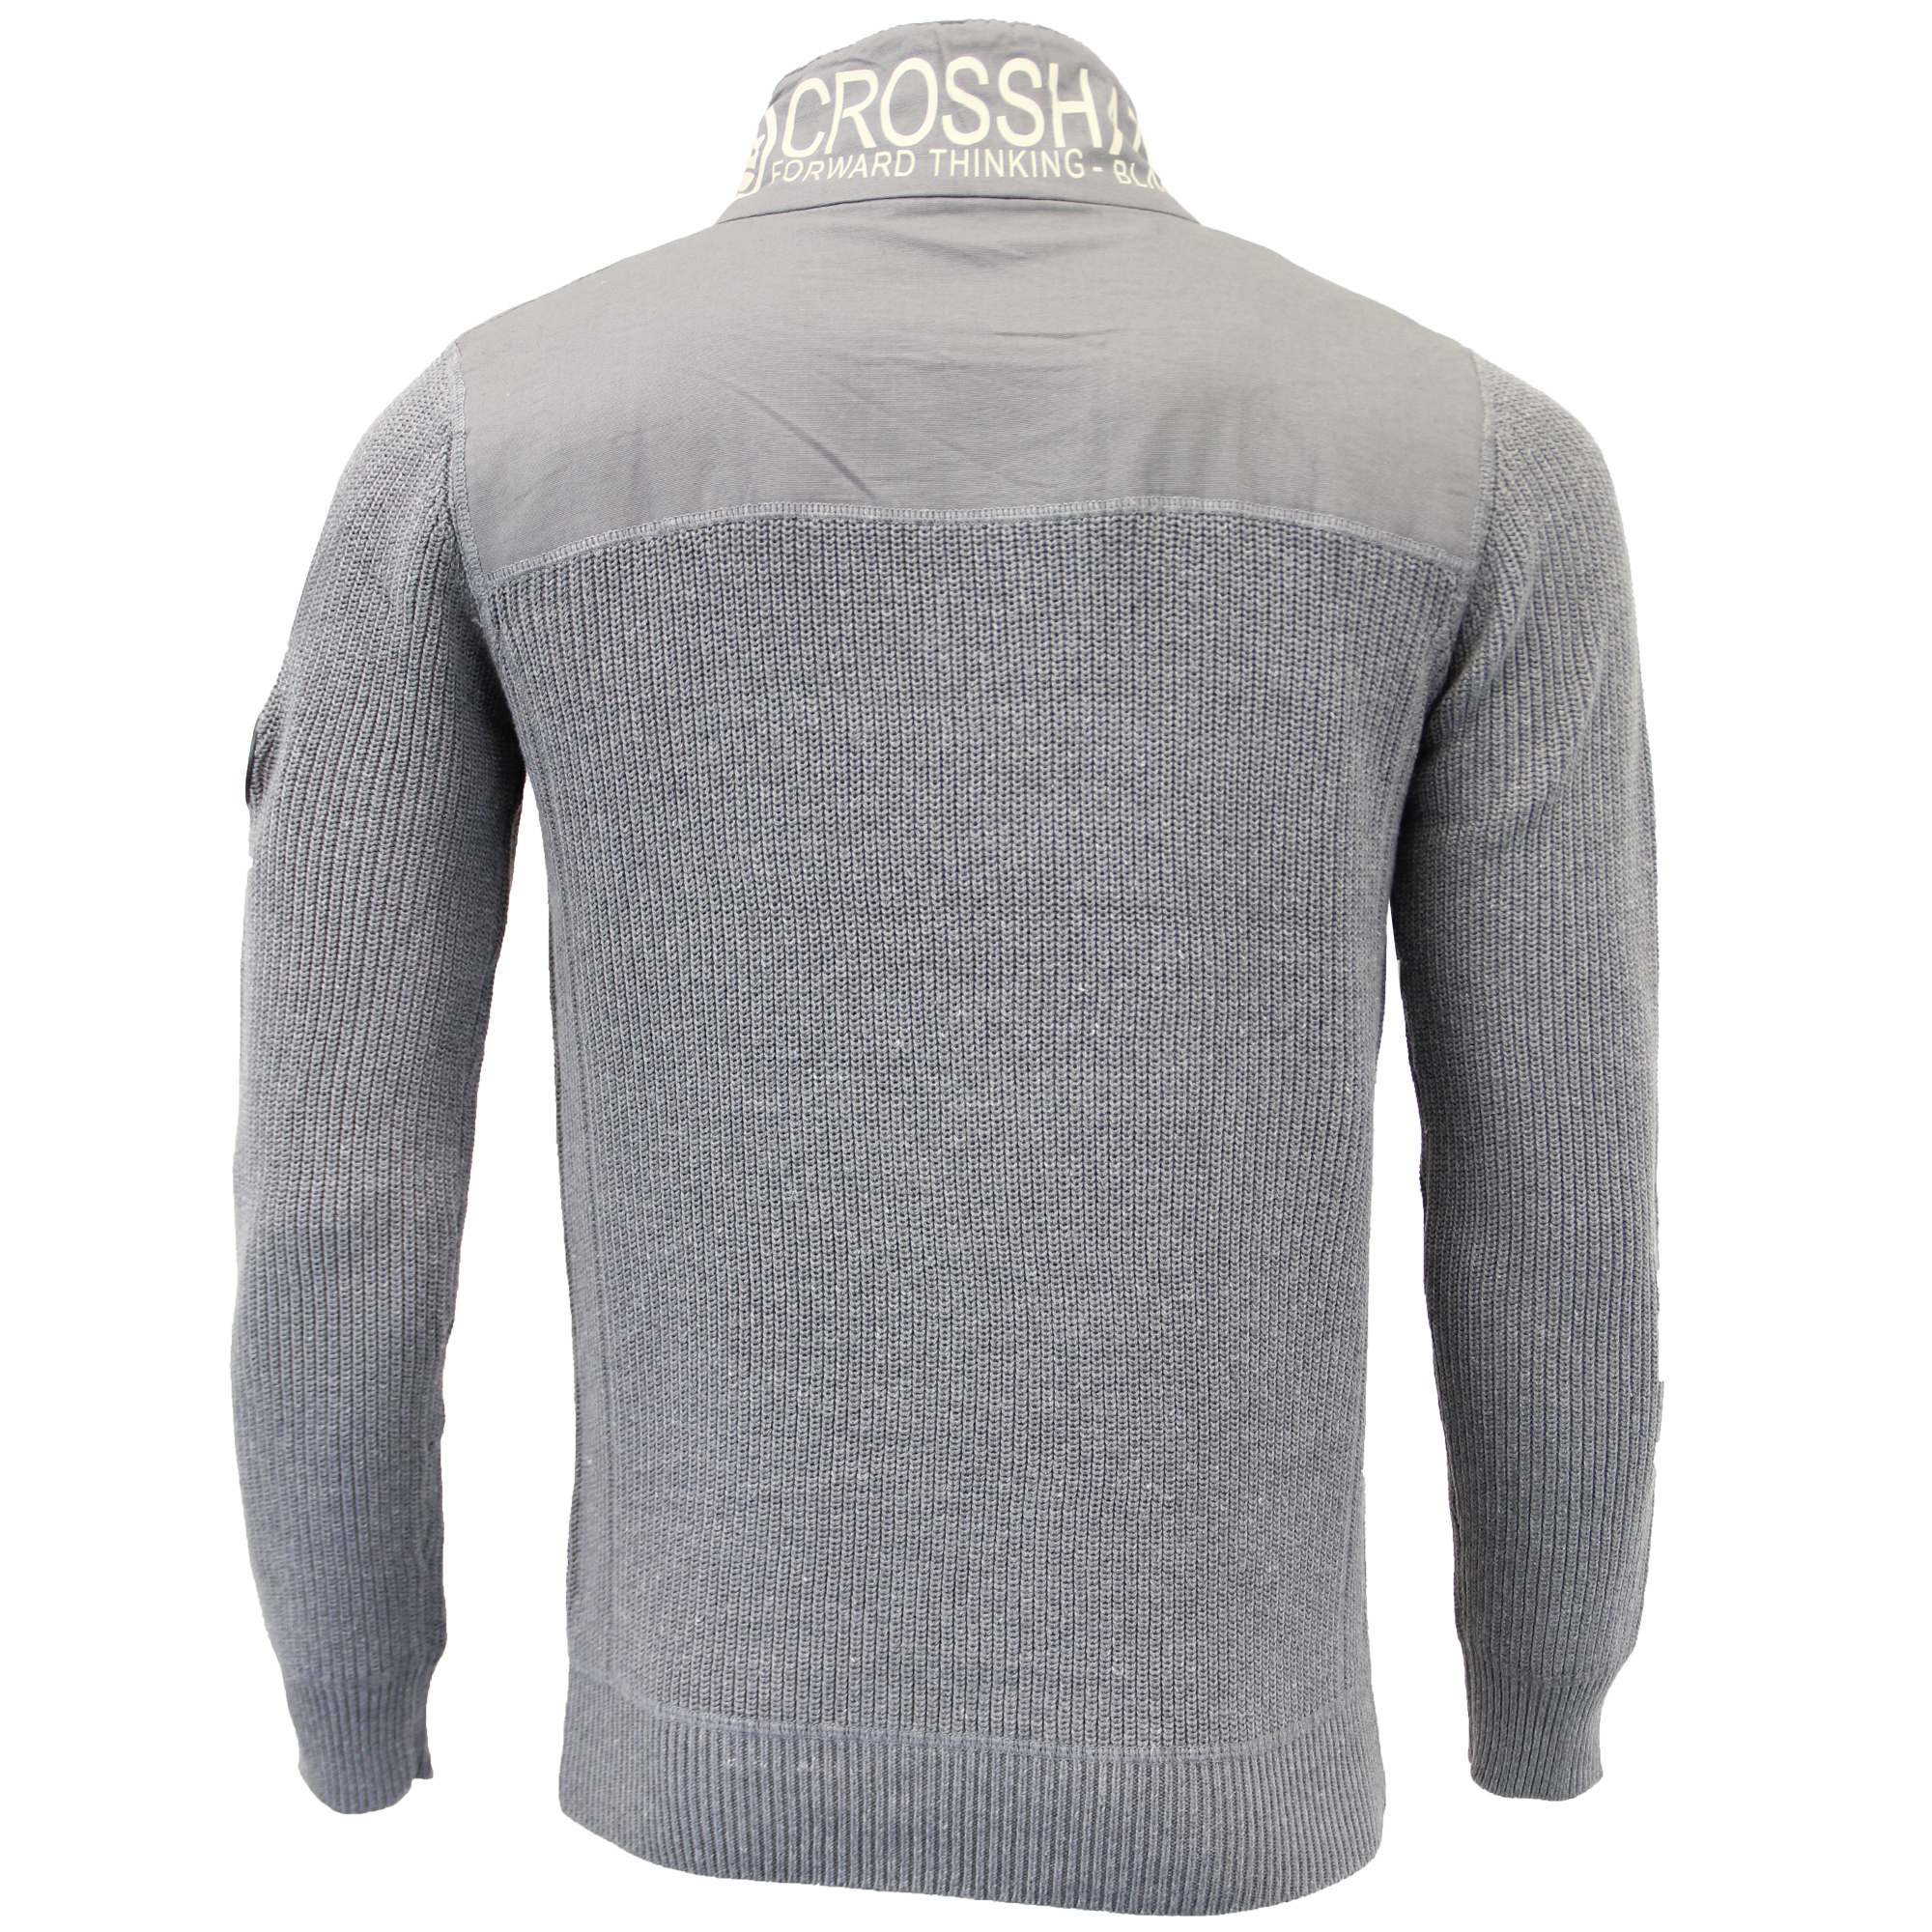 Mens-Knitted-Cotton-Crosshatch-Jumper-Sweater-Pullover-Waffle-Top-Zip-Winter-New thumbnail 11